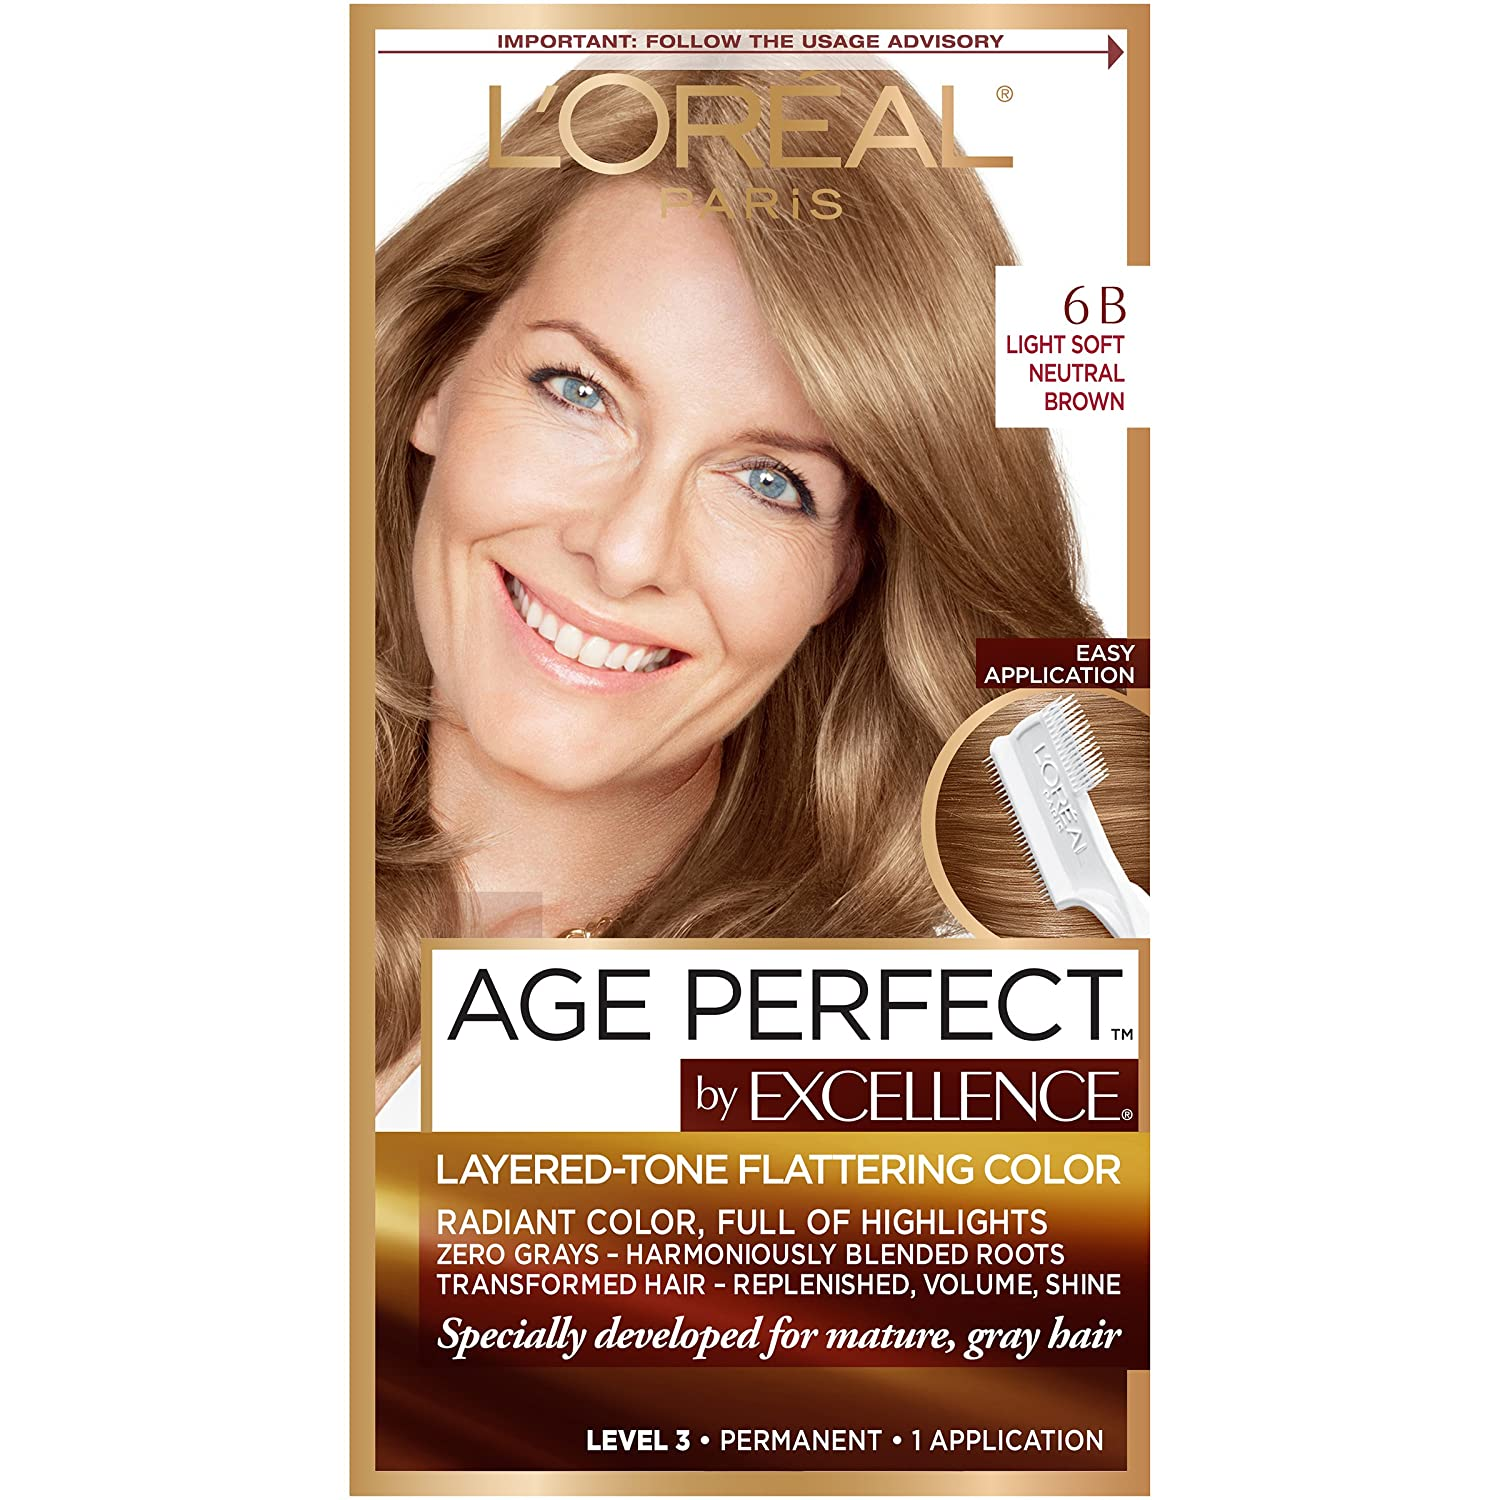 L'Oreal Paris Excellence Age Perfect Layered Tone Flattering Color, 6B Light Soft Neutral Brown (Packaging May Vary)